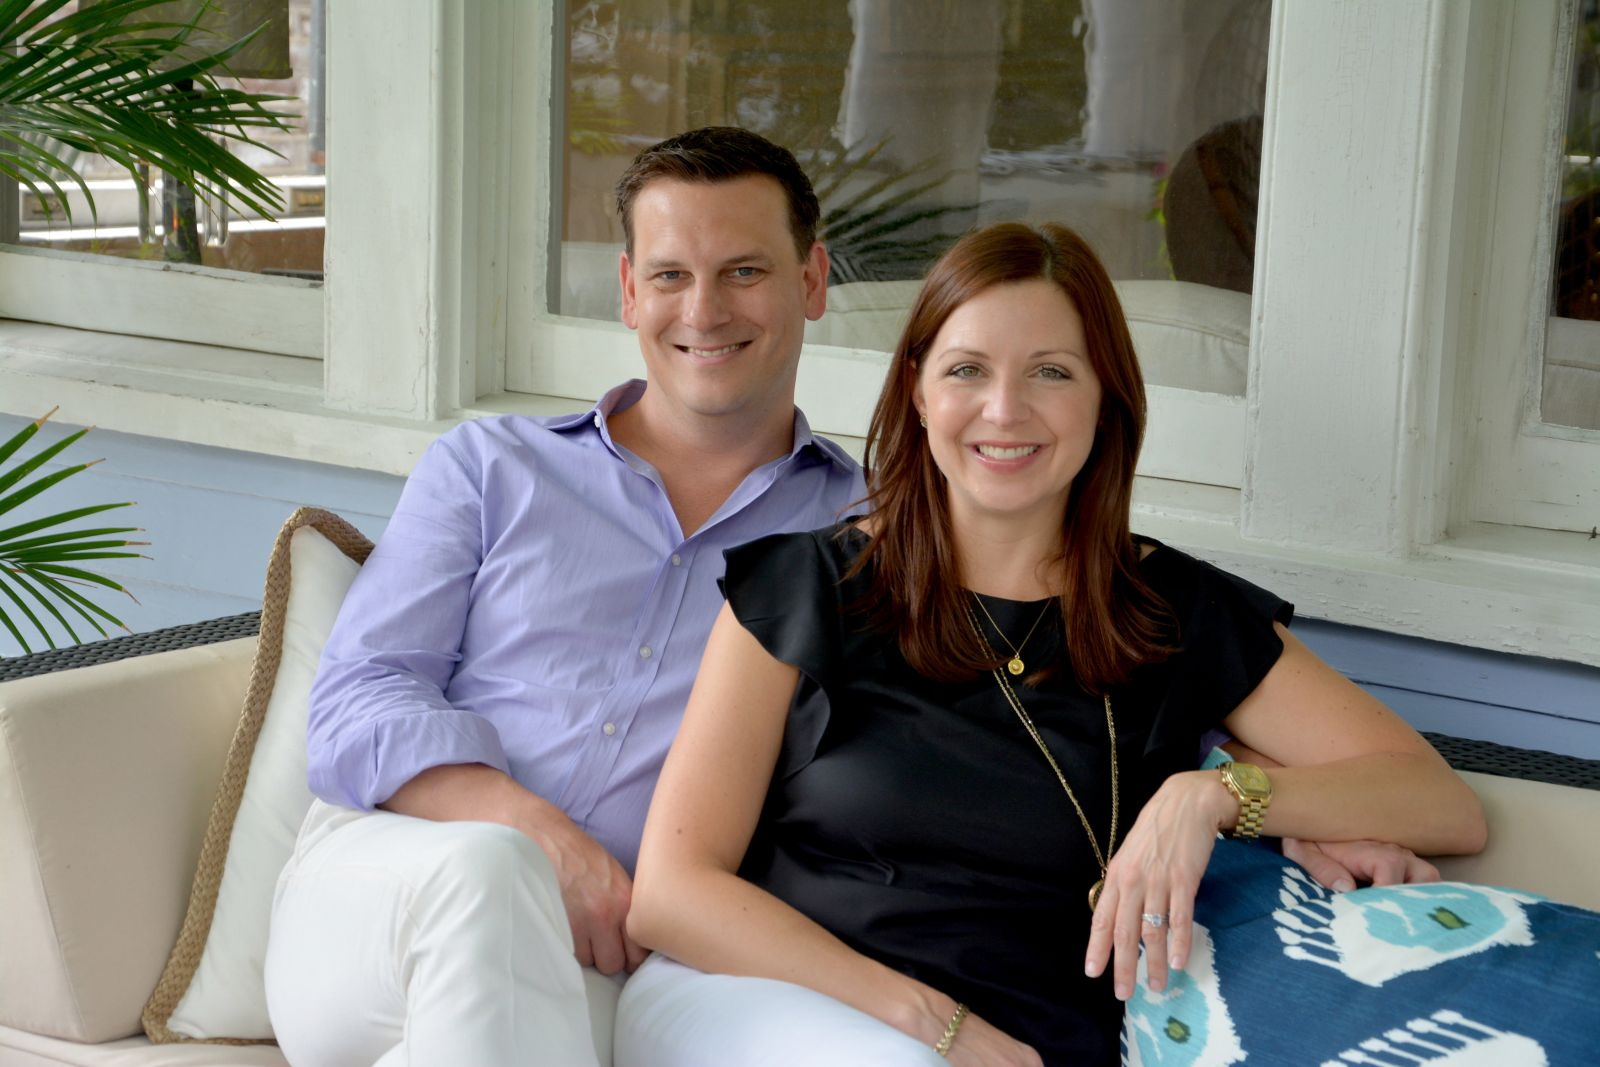 Margaret and Kris Furniss have operated Caviar & Bananas restaurant in Charleston for eight years. Now the couple is opening their first restaurant away from the coast in Greenville. (Photo provided)